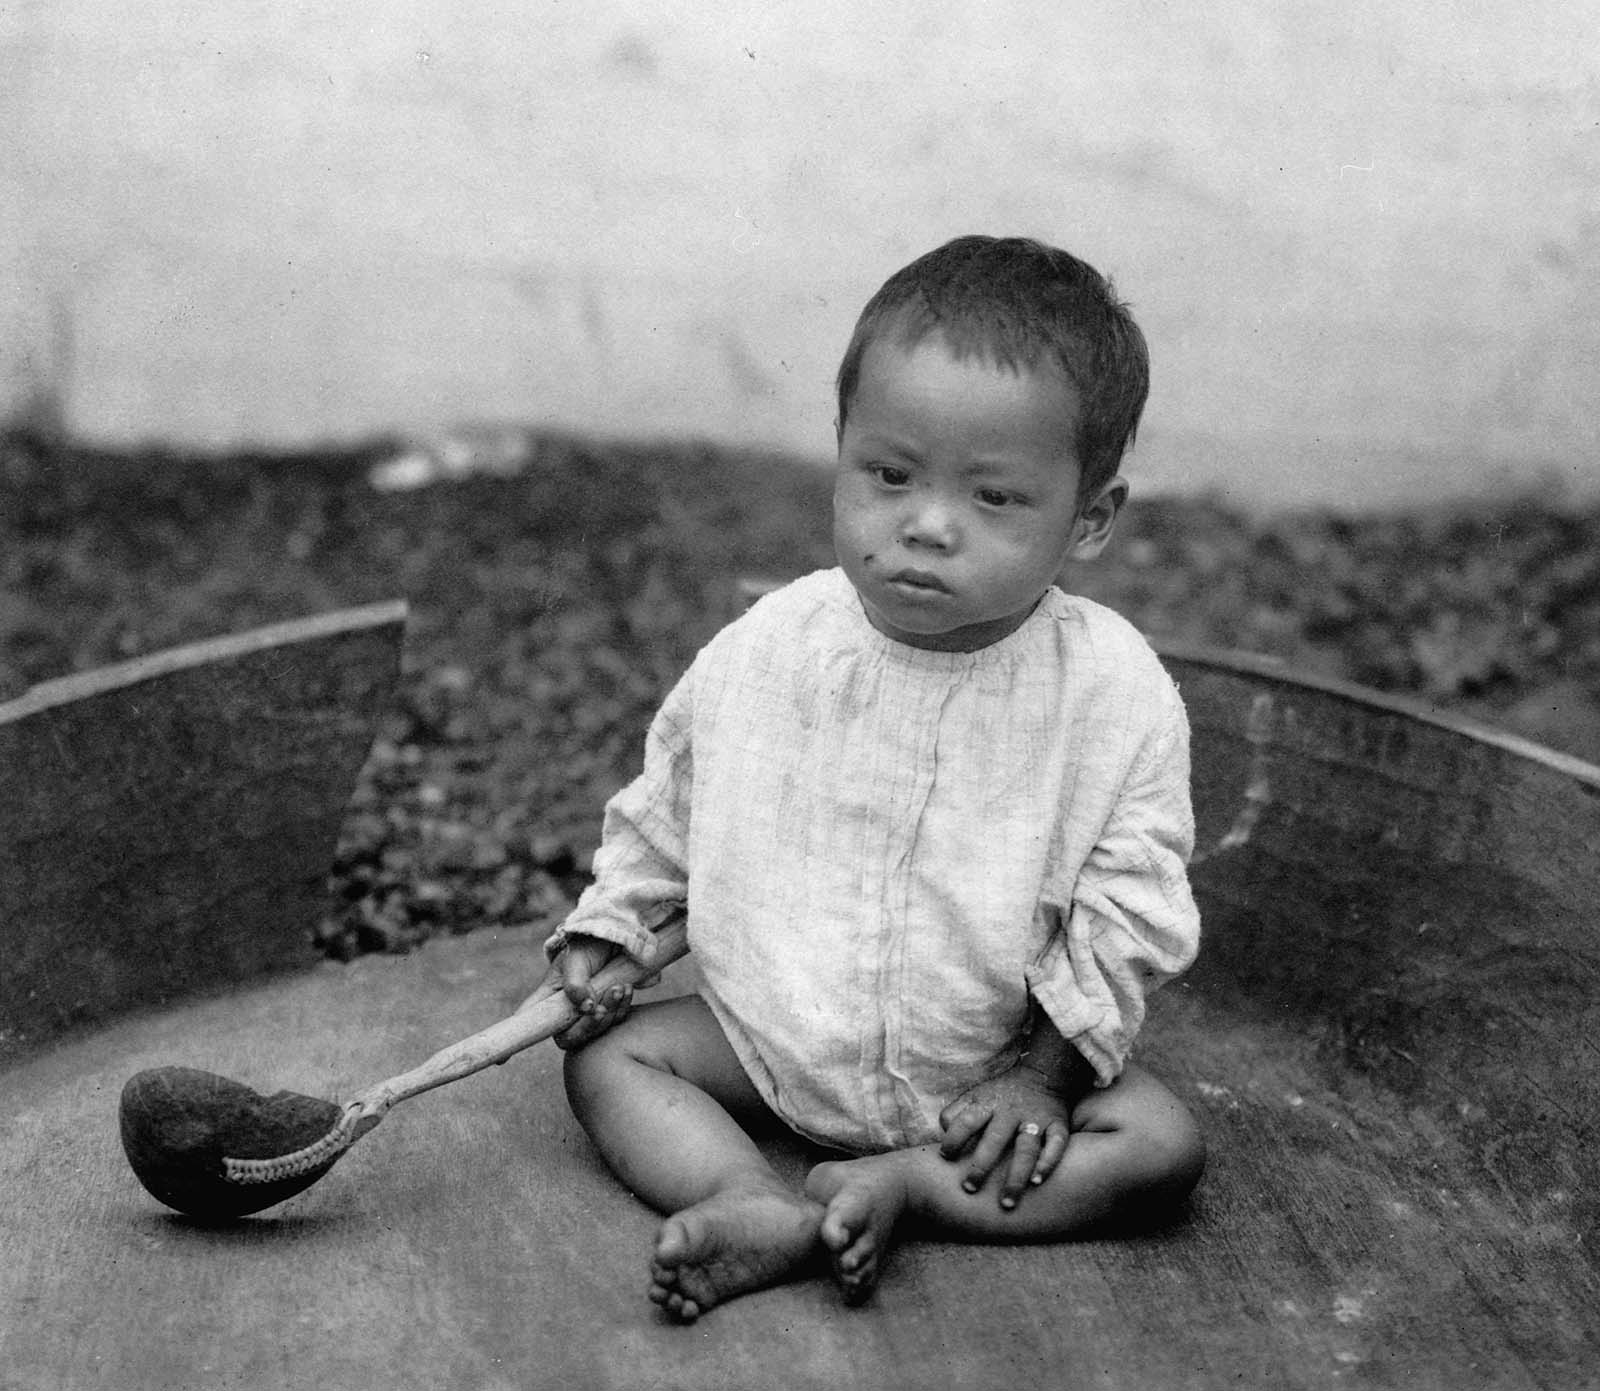 Even children and babies were treated as displays in the human zoos. This youngster was among others at the World's Columbian Exposition in Chicago, Illinois in about 1891.